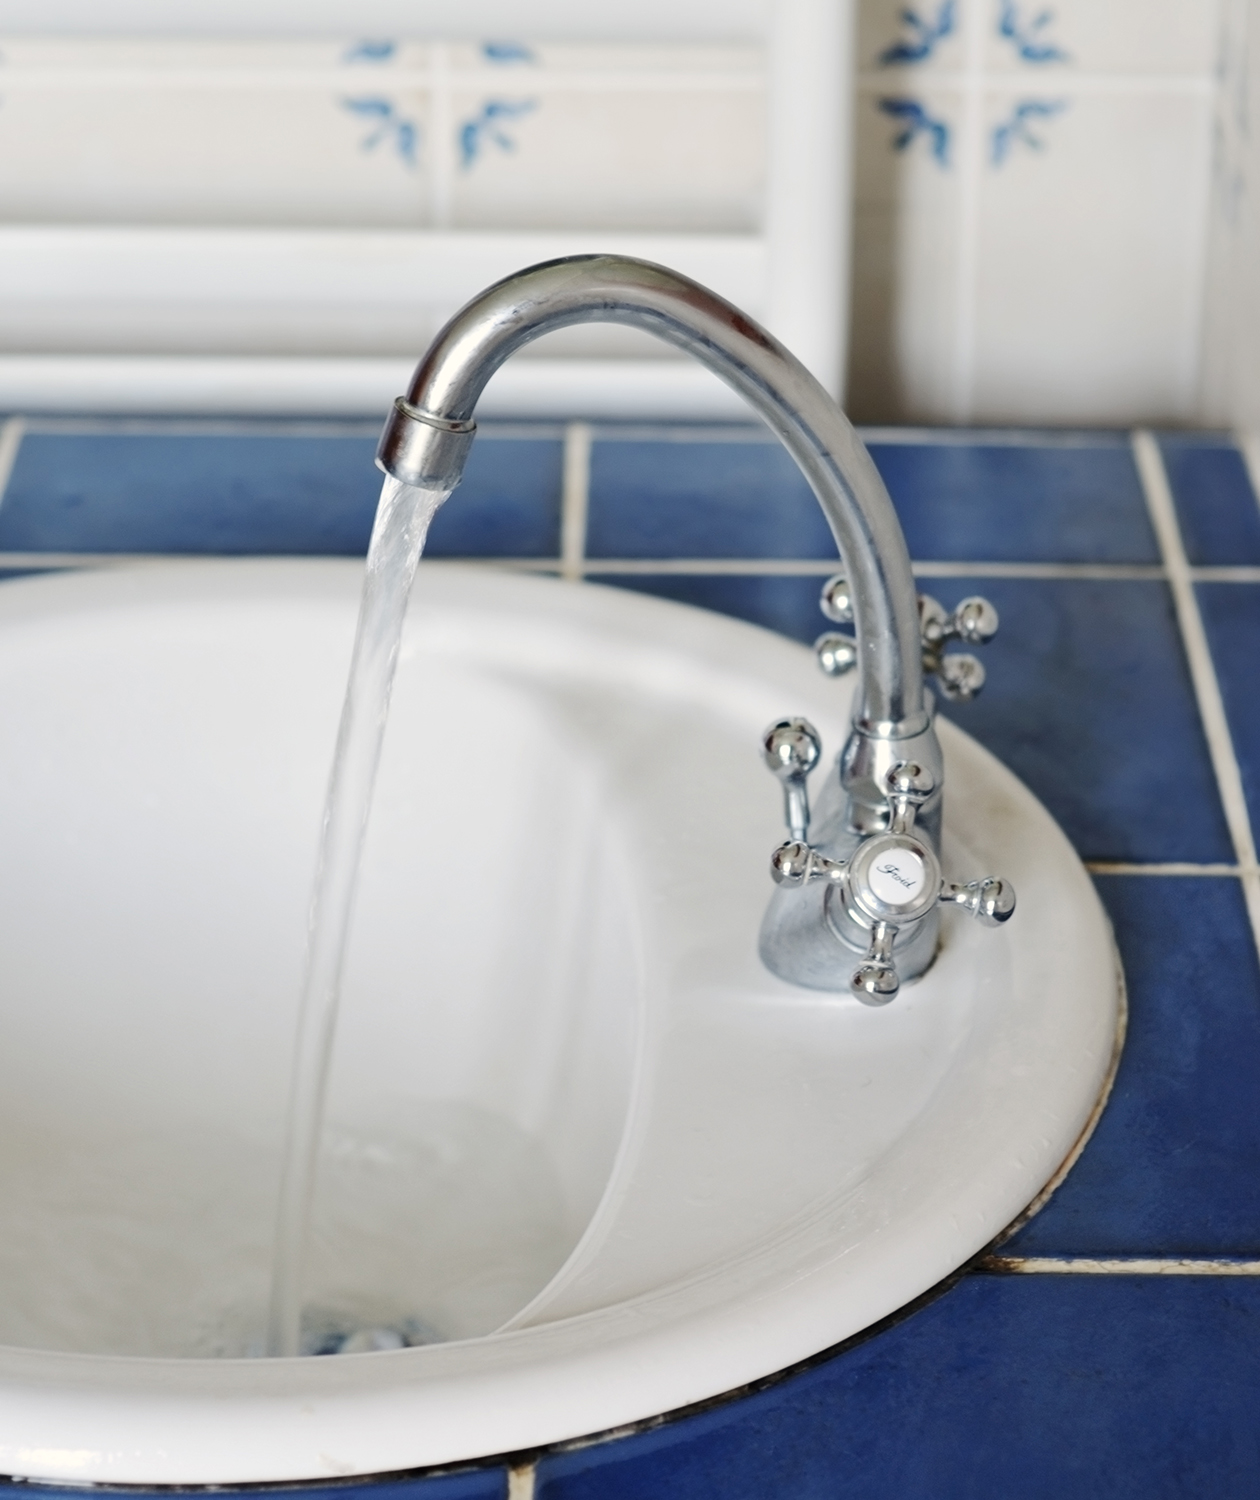 White wash basin and blue tiles